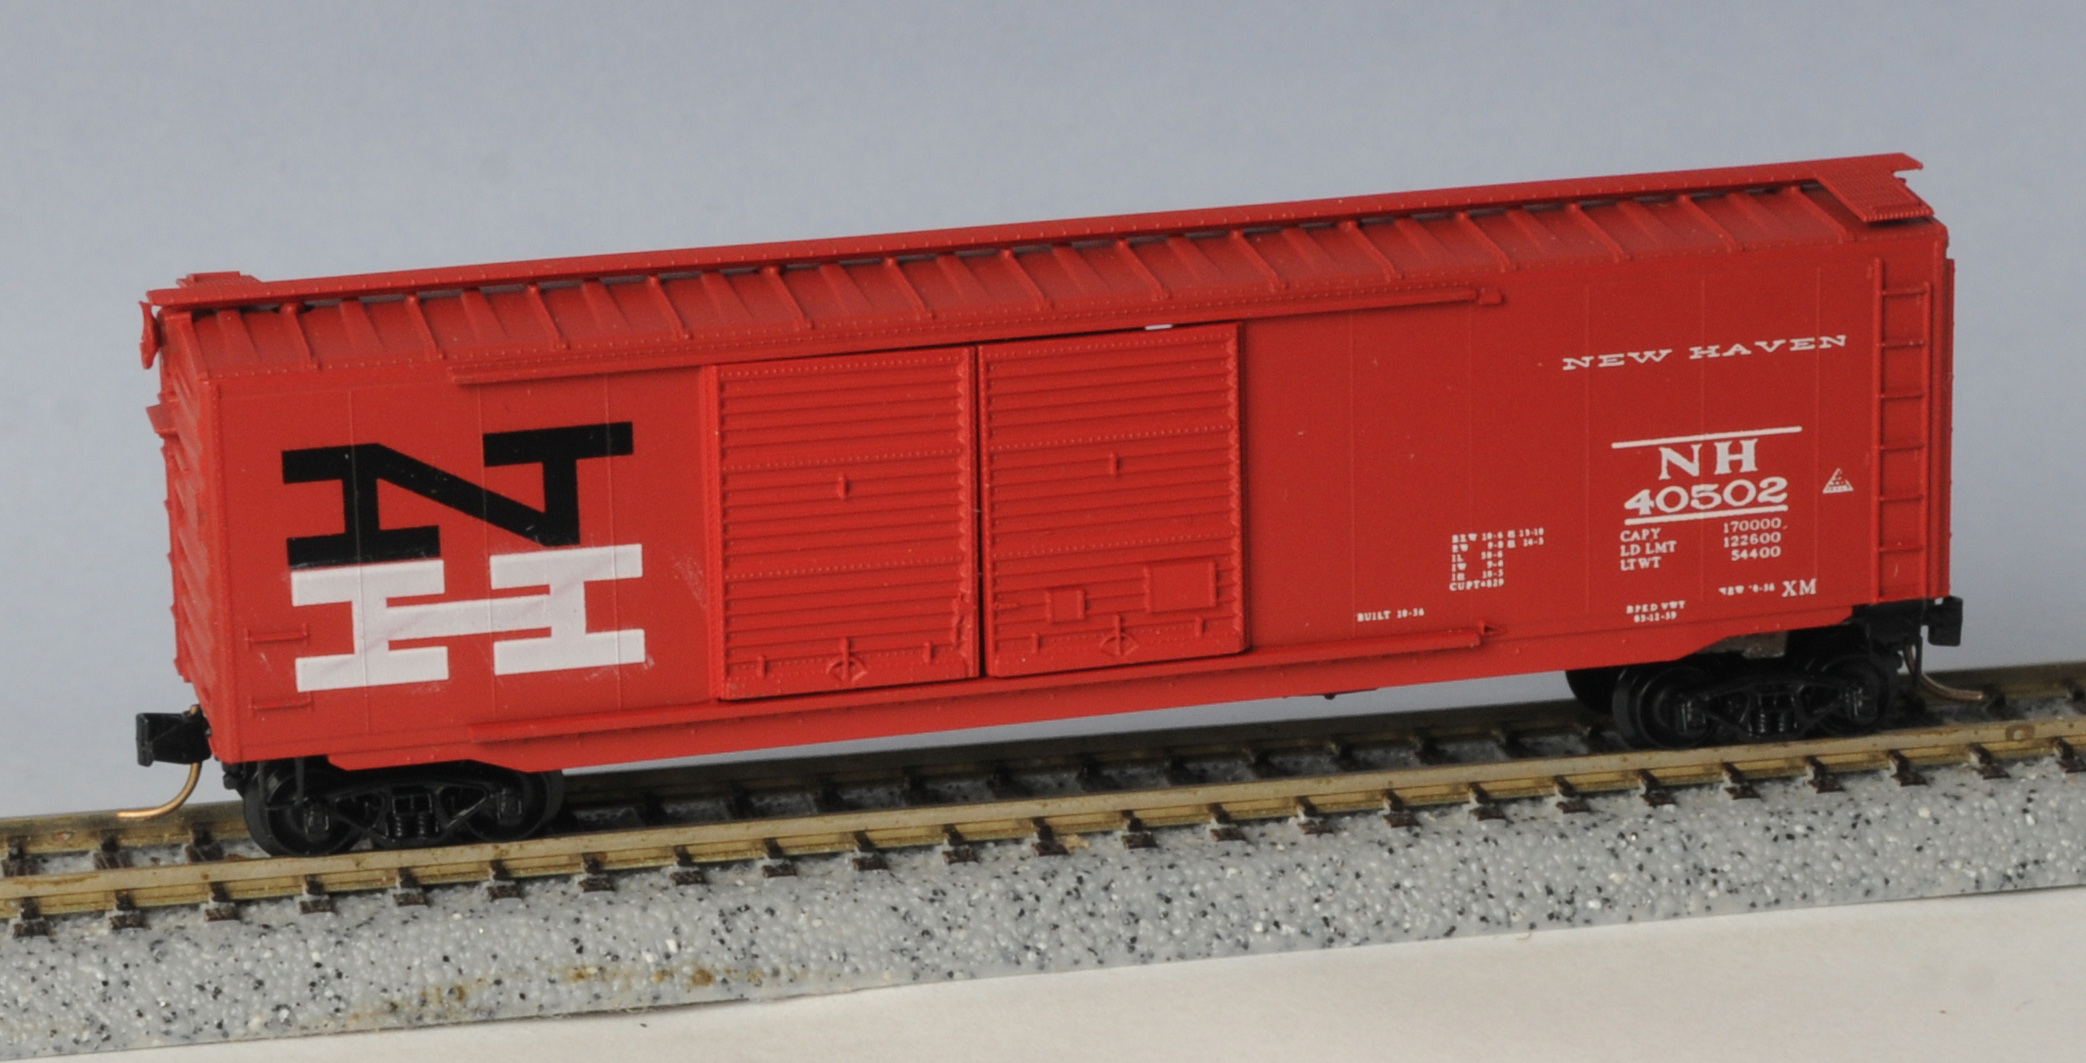 N Scale - Eastern Seaboard Models - 201001 - Boxcar, 50 Foot, PS-1 - New Haven - 40502